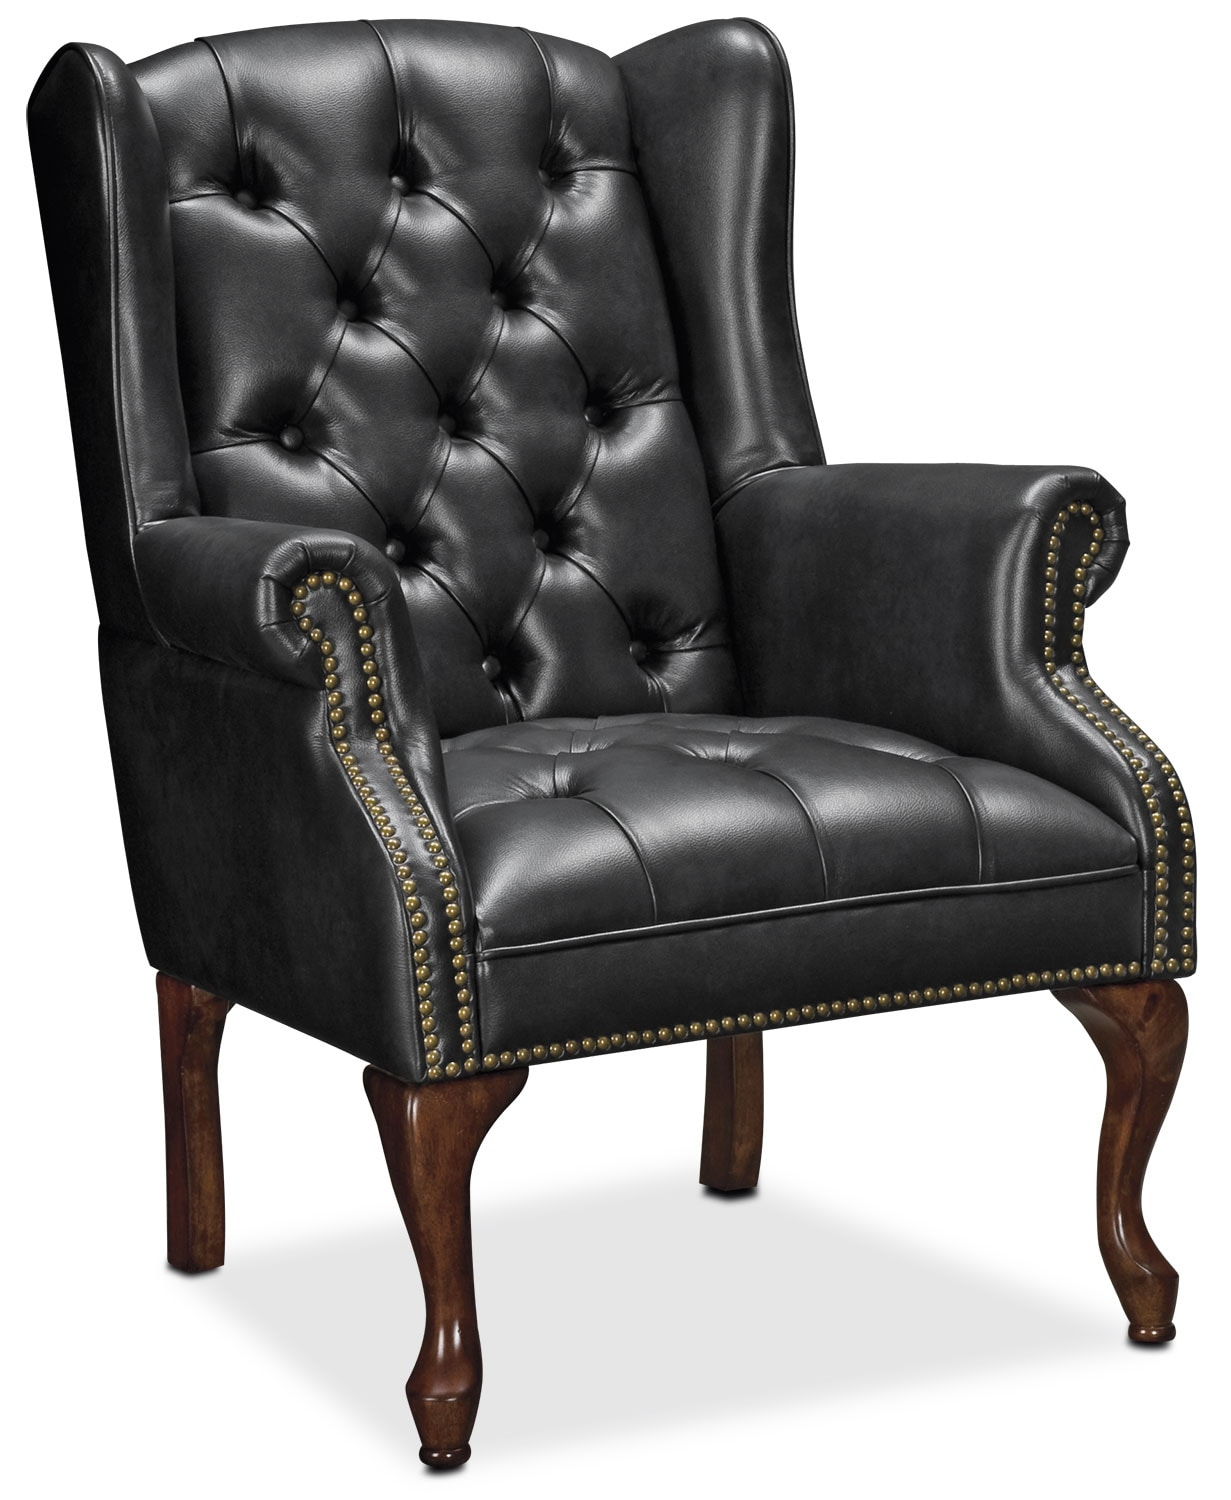 Living Room Furniture - Wyndham Tufted Button Accent Chair - Black